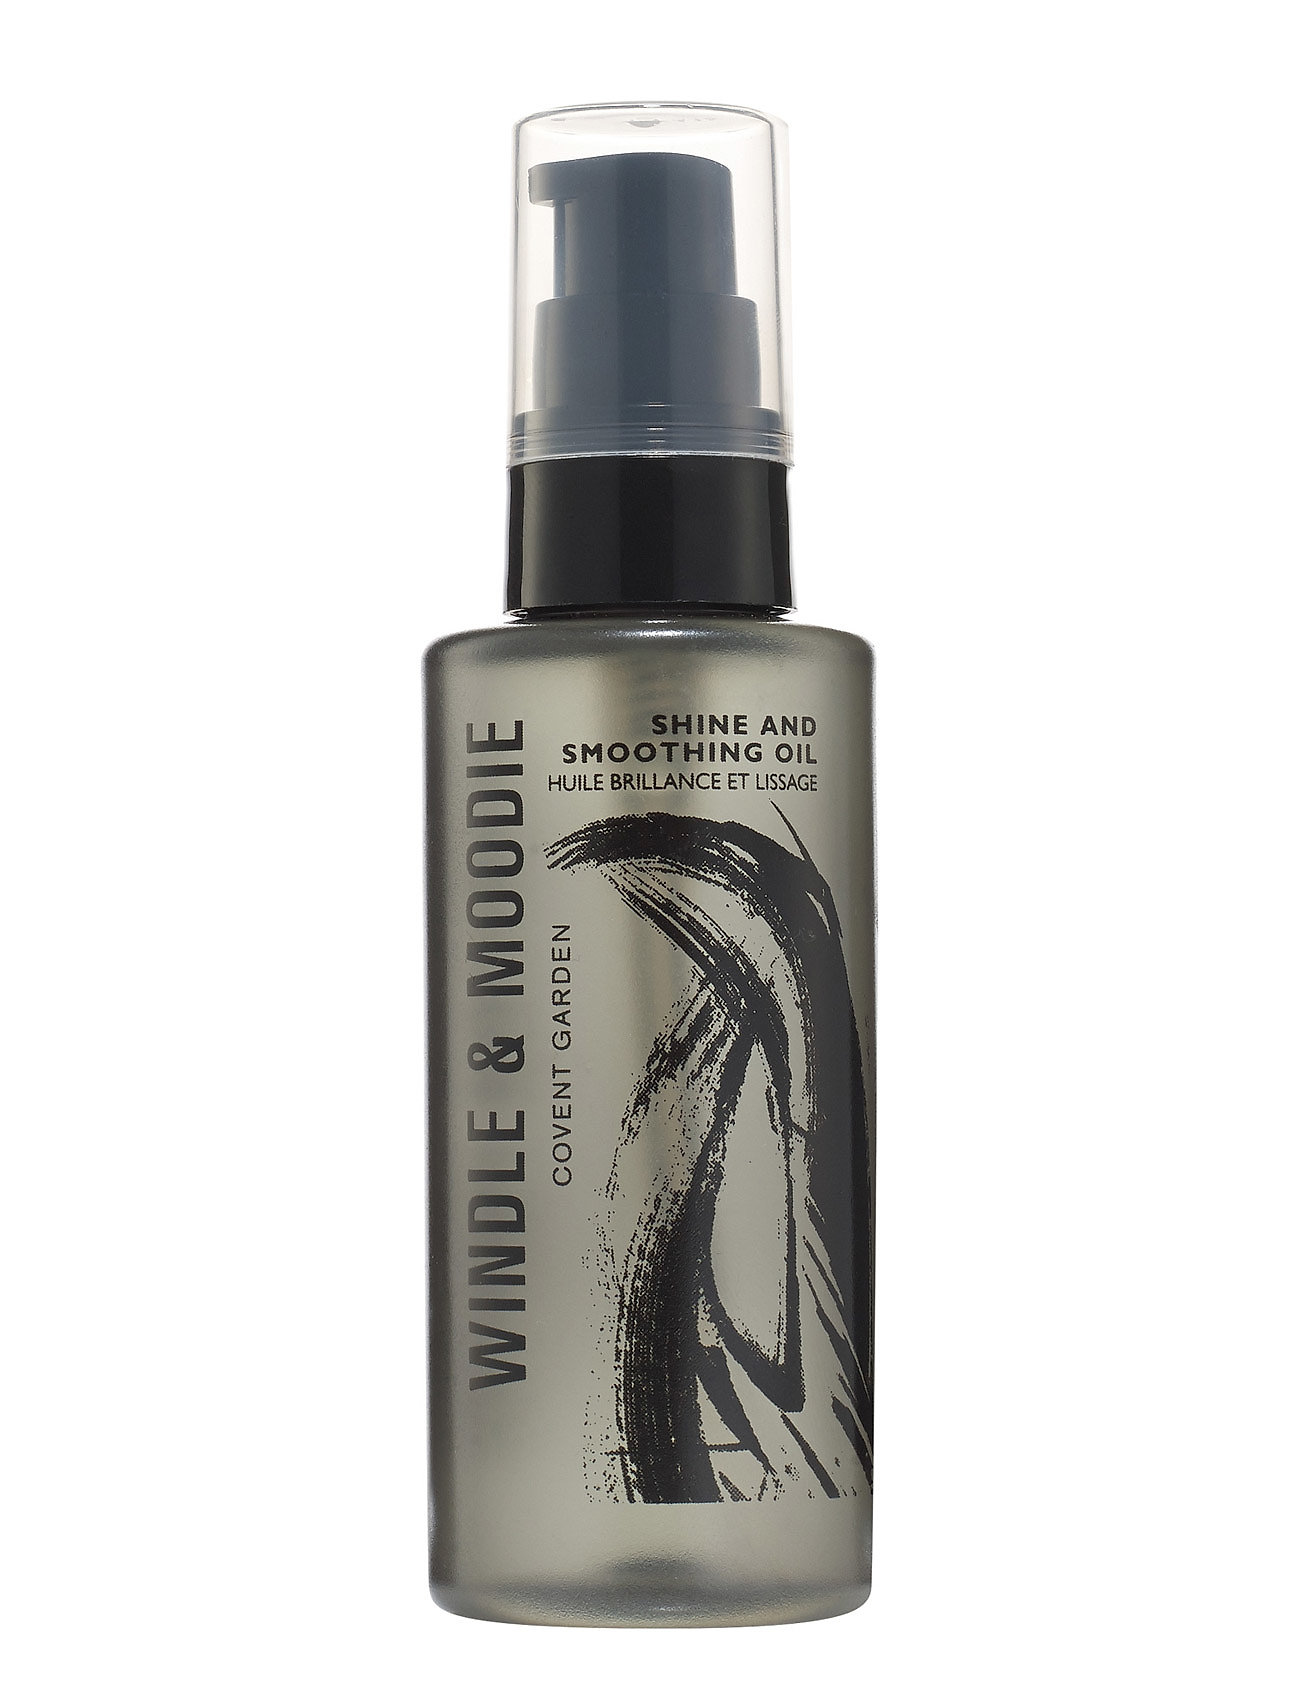 windle & moodie Shine & smoothing oil fra boozt.com dk